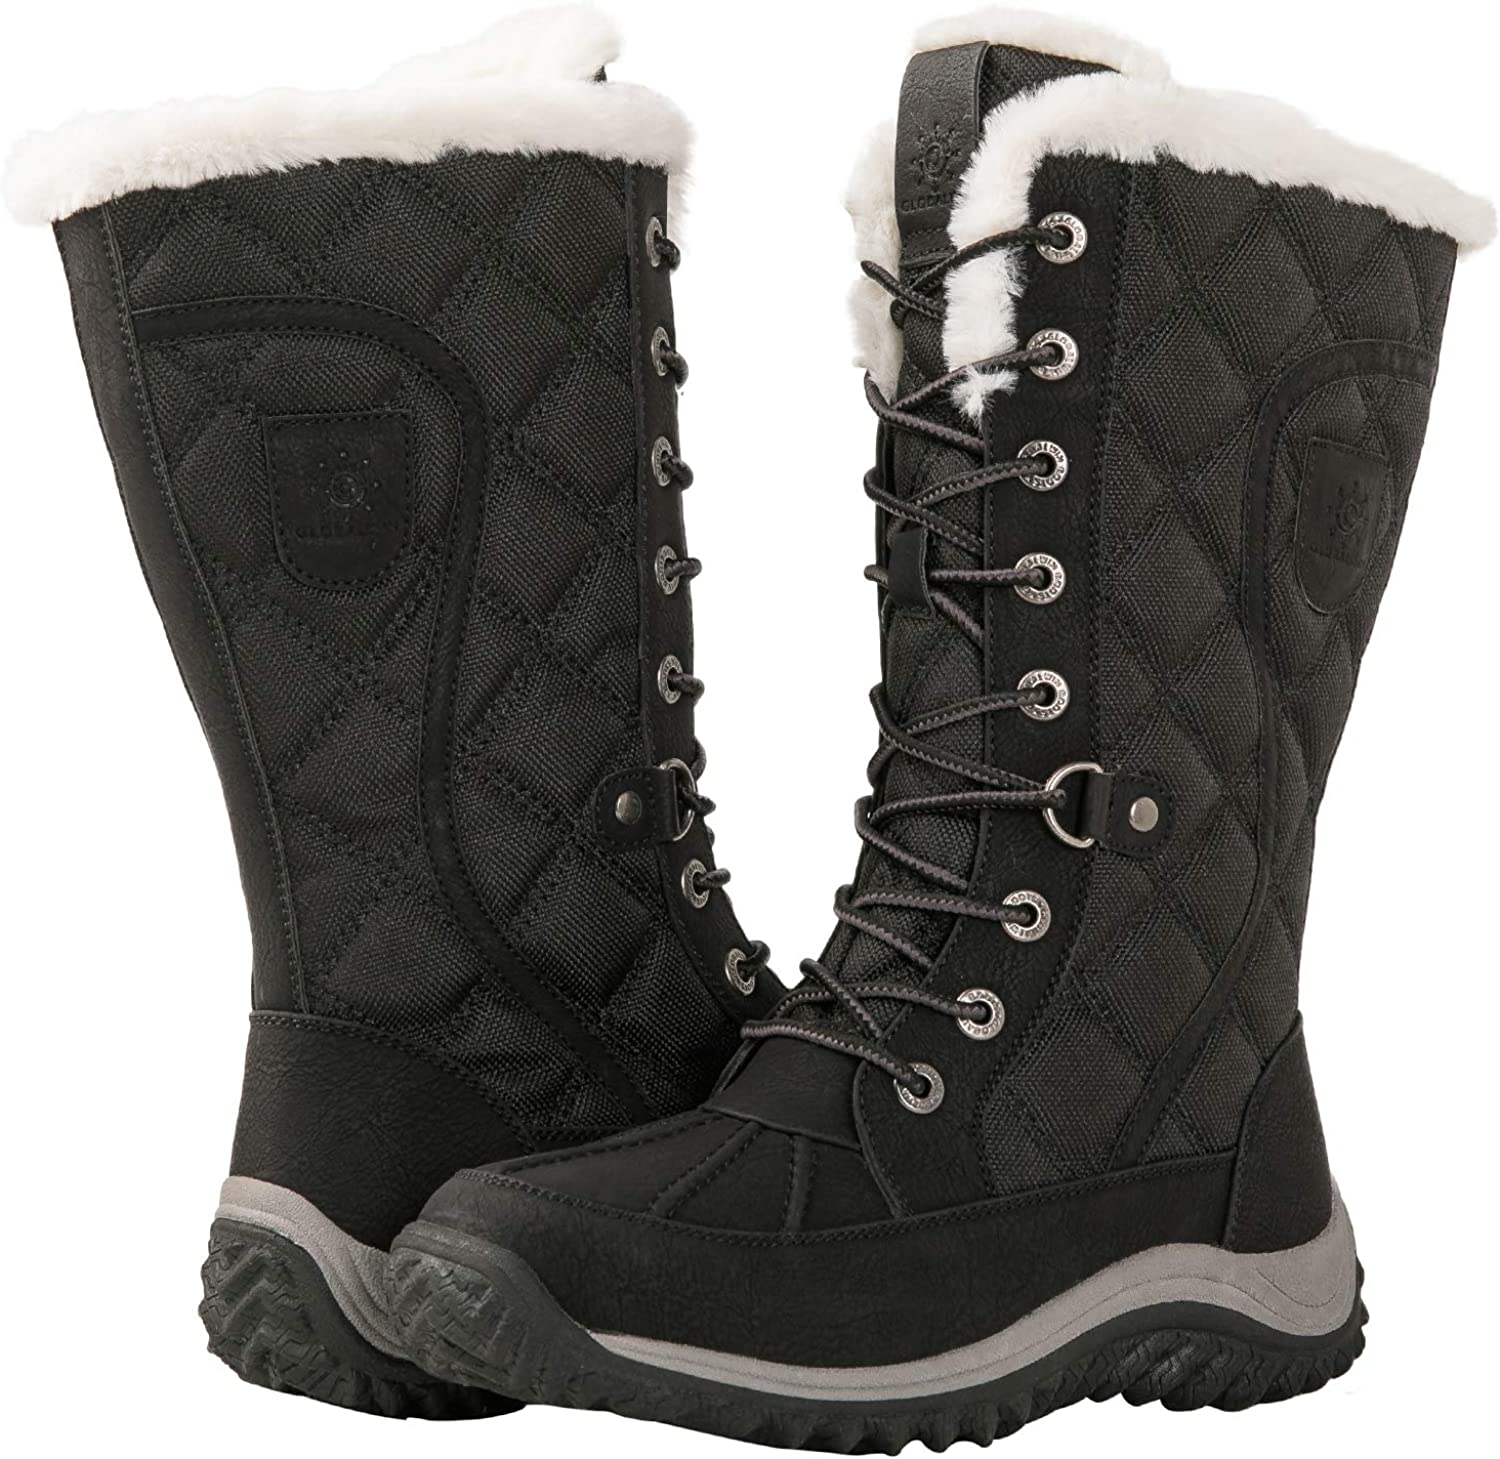 T-JULY Womens Plus Size Hidden Wedges Winter Boots Back Lace-up Mid-Calf Shoes Woman Big Size Snow Boots